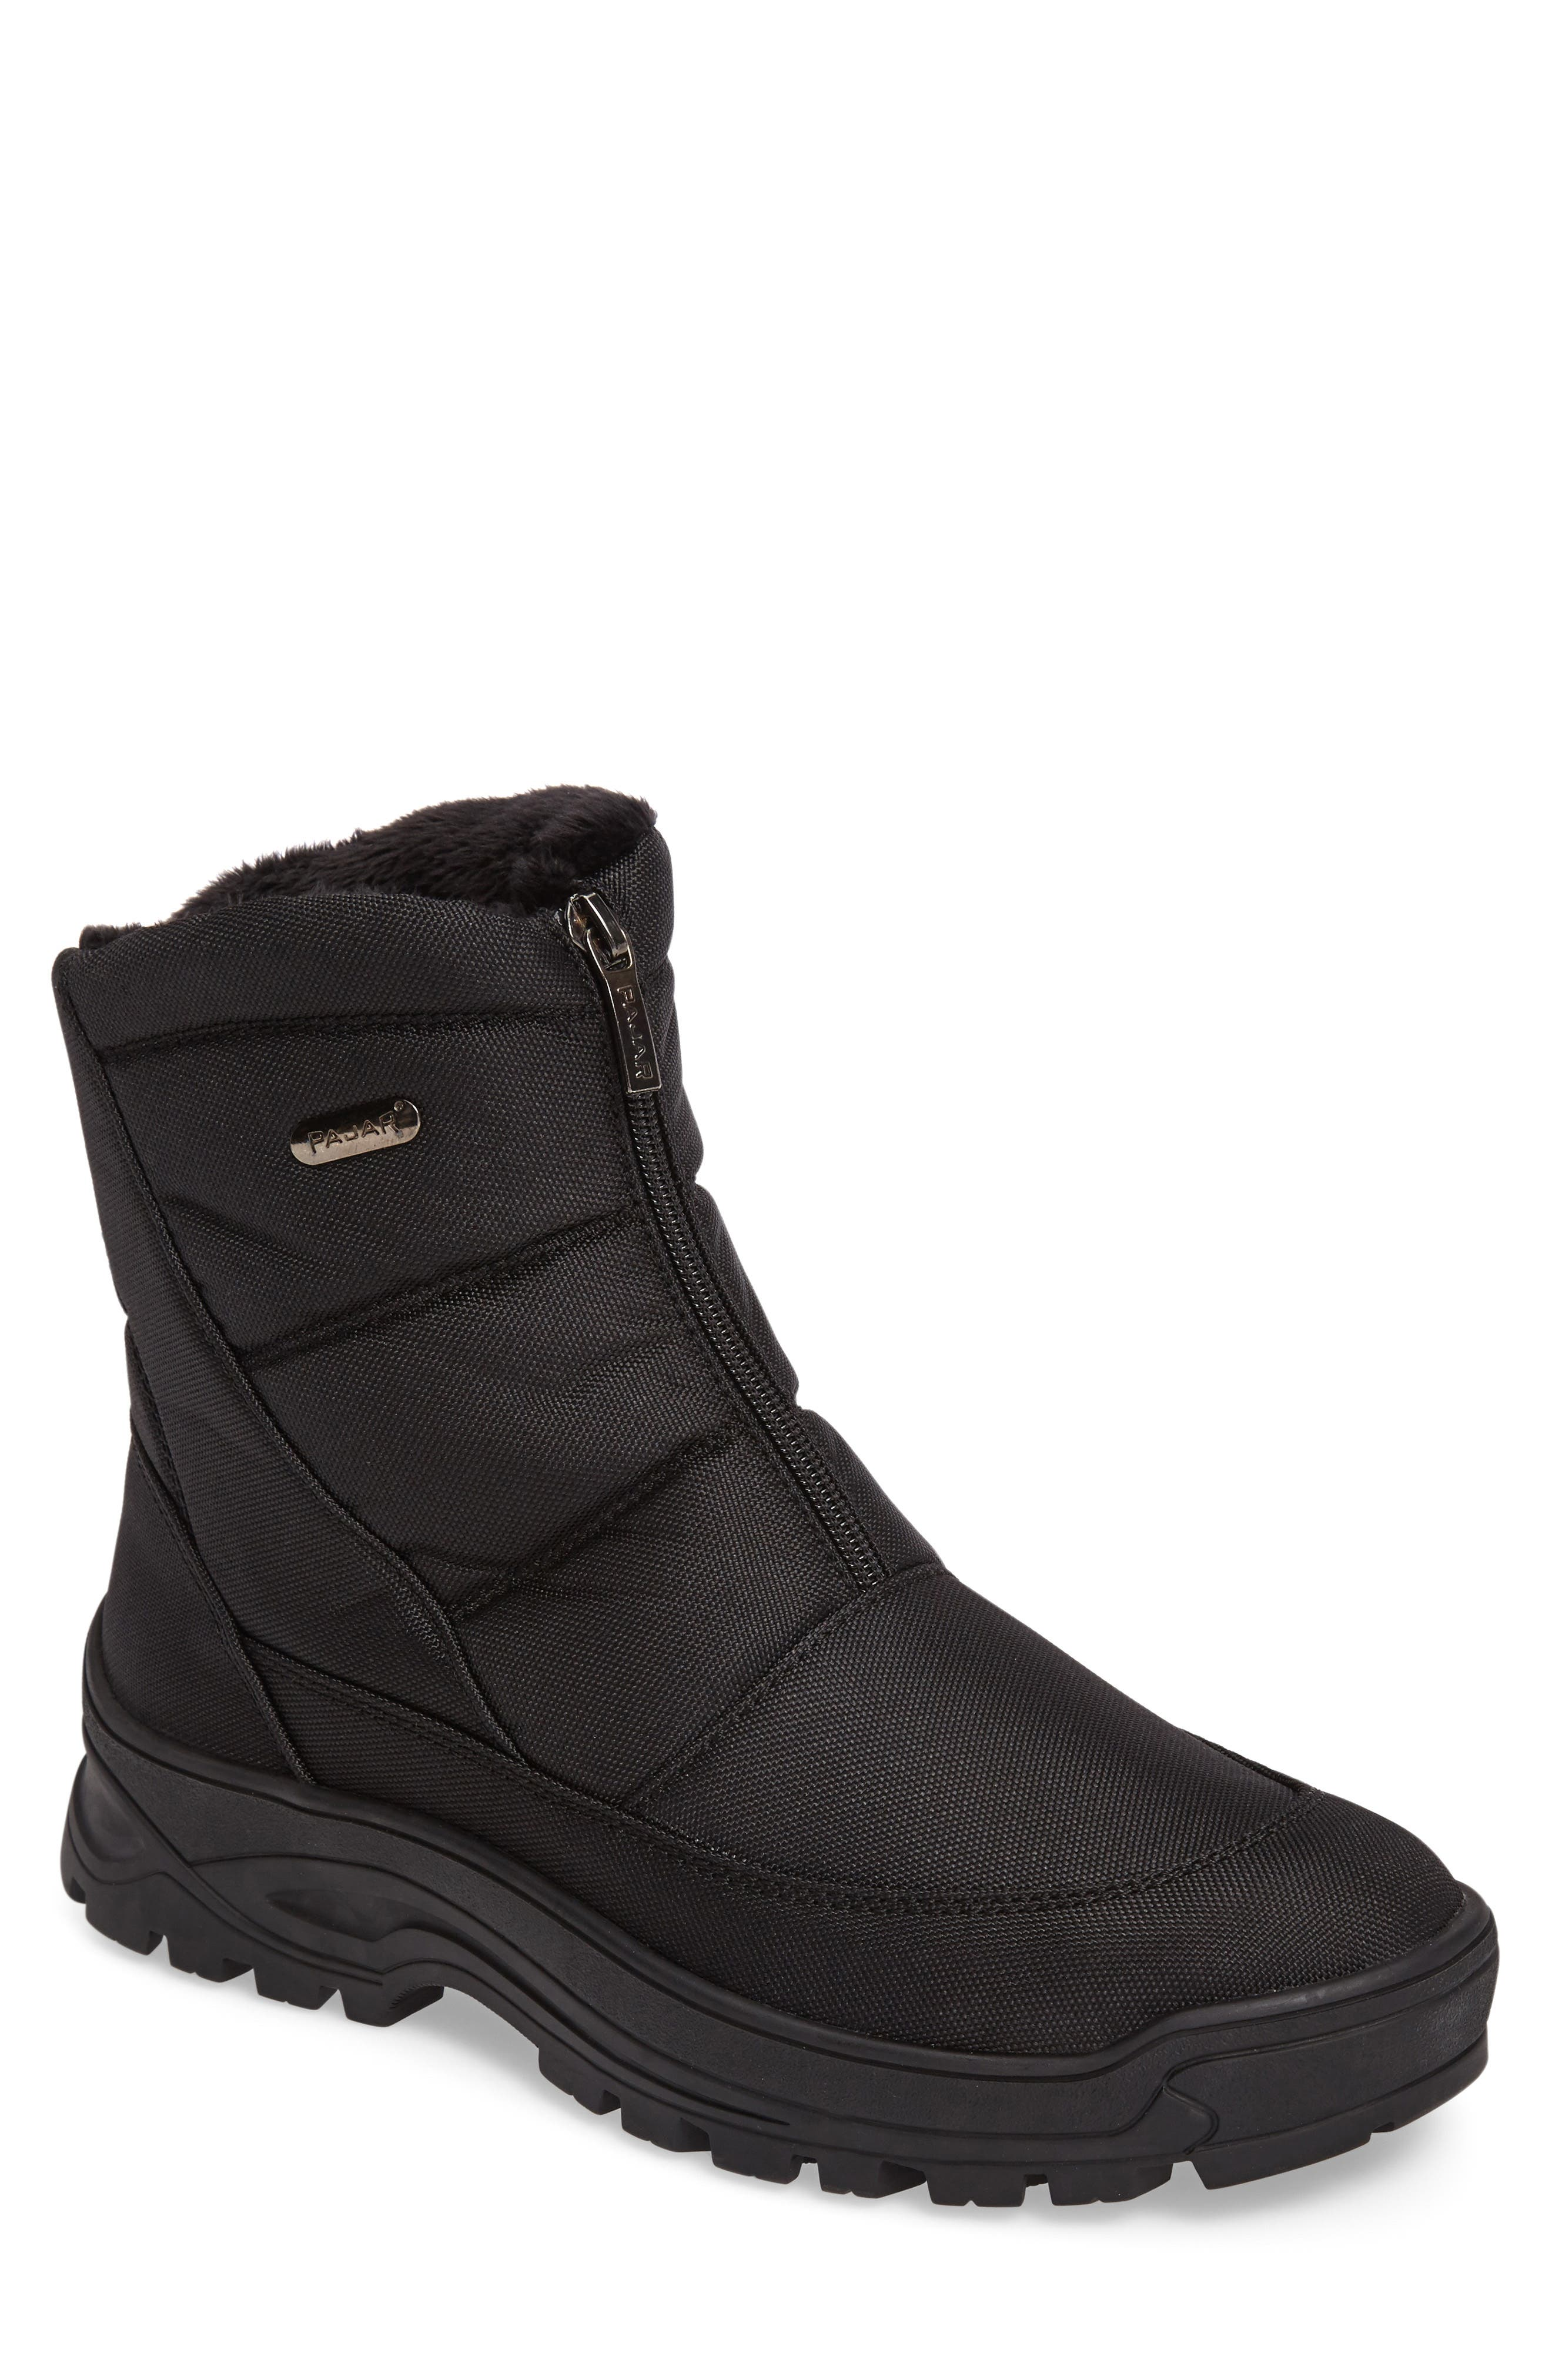 Icepack Boot with Faux Fur Lining,                             Main thumbnail 1, color,